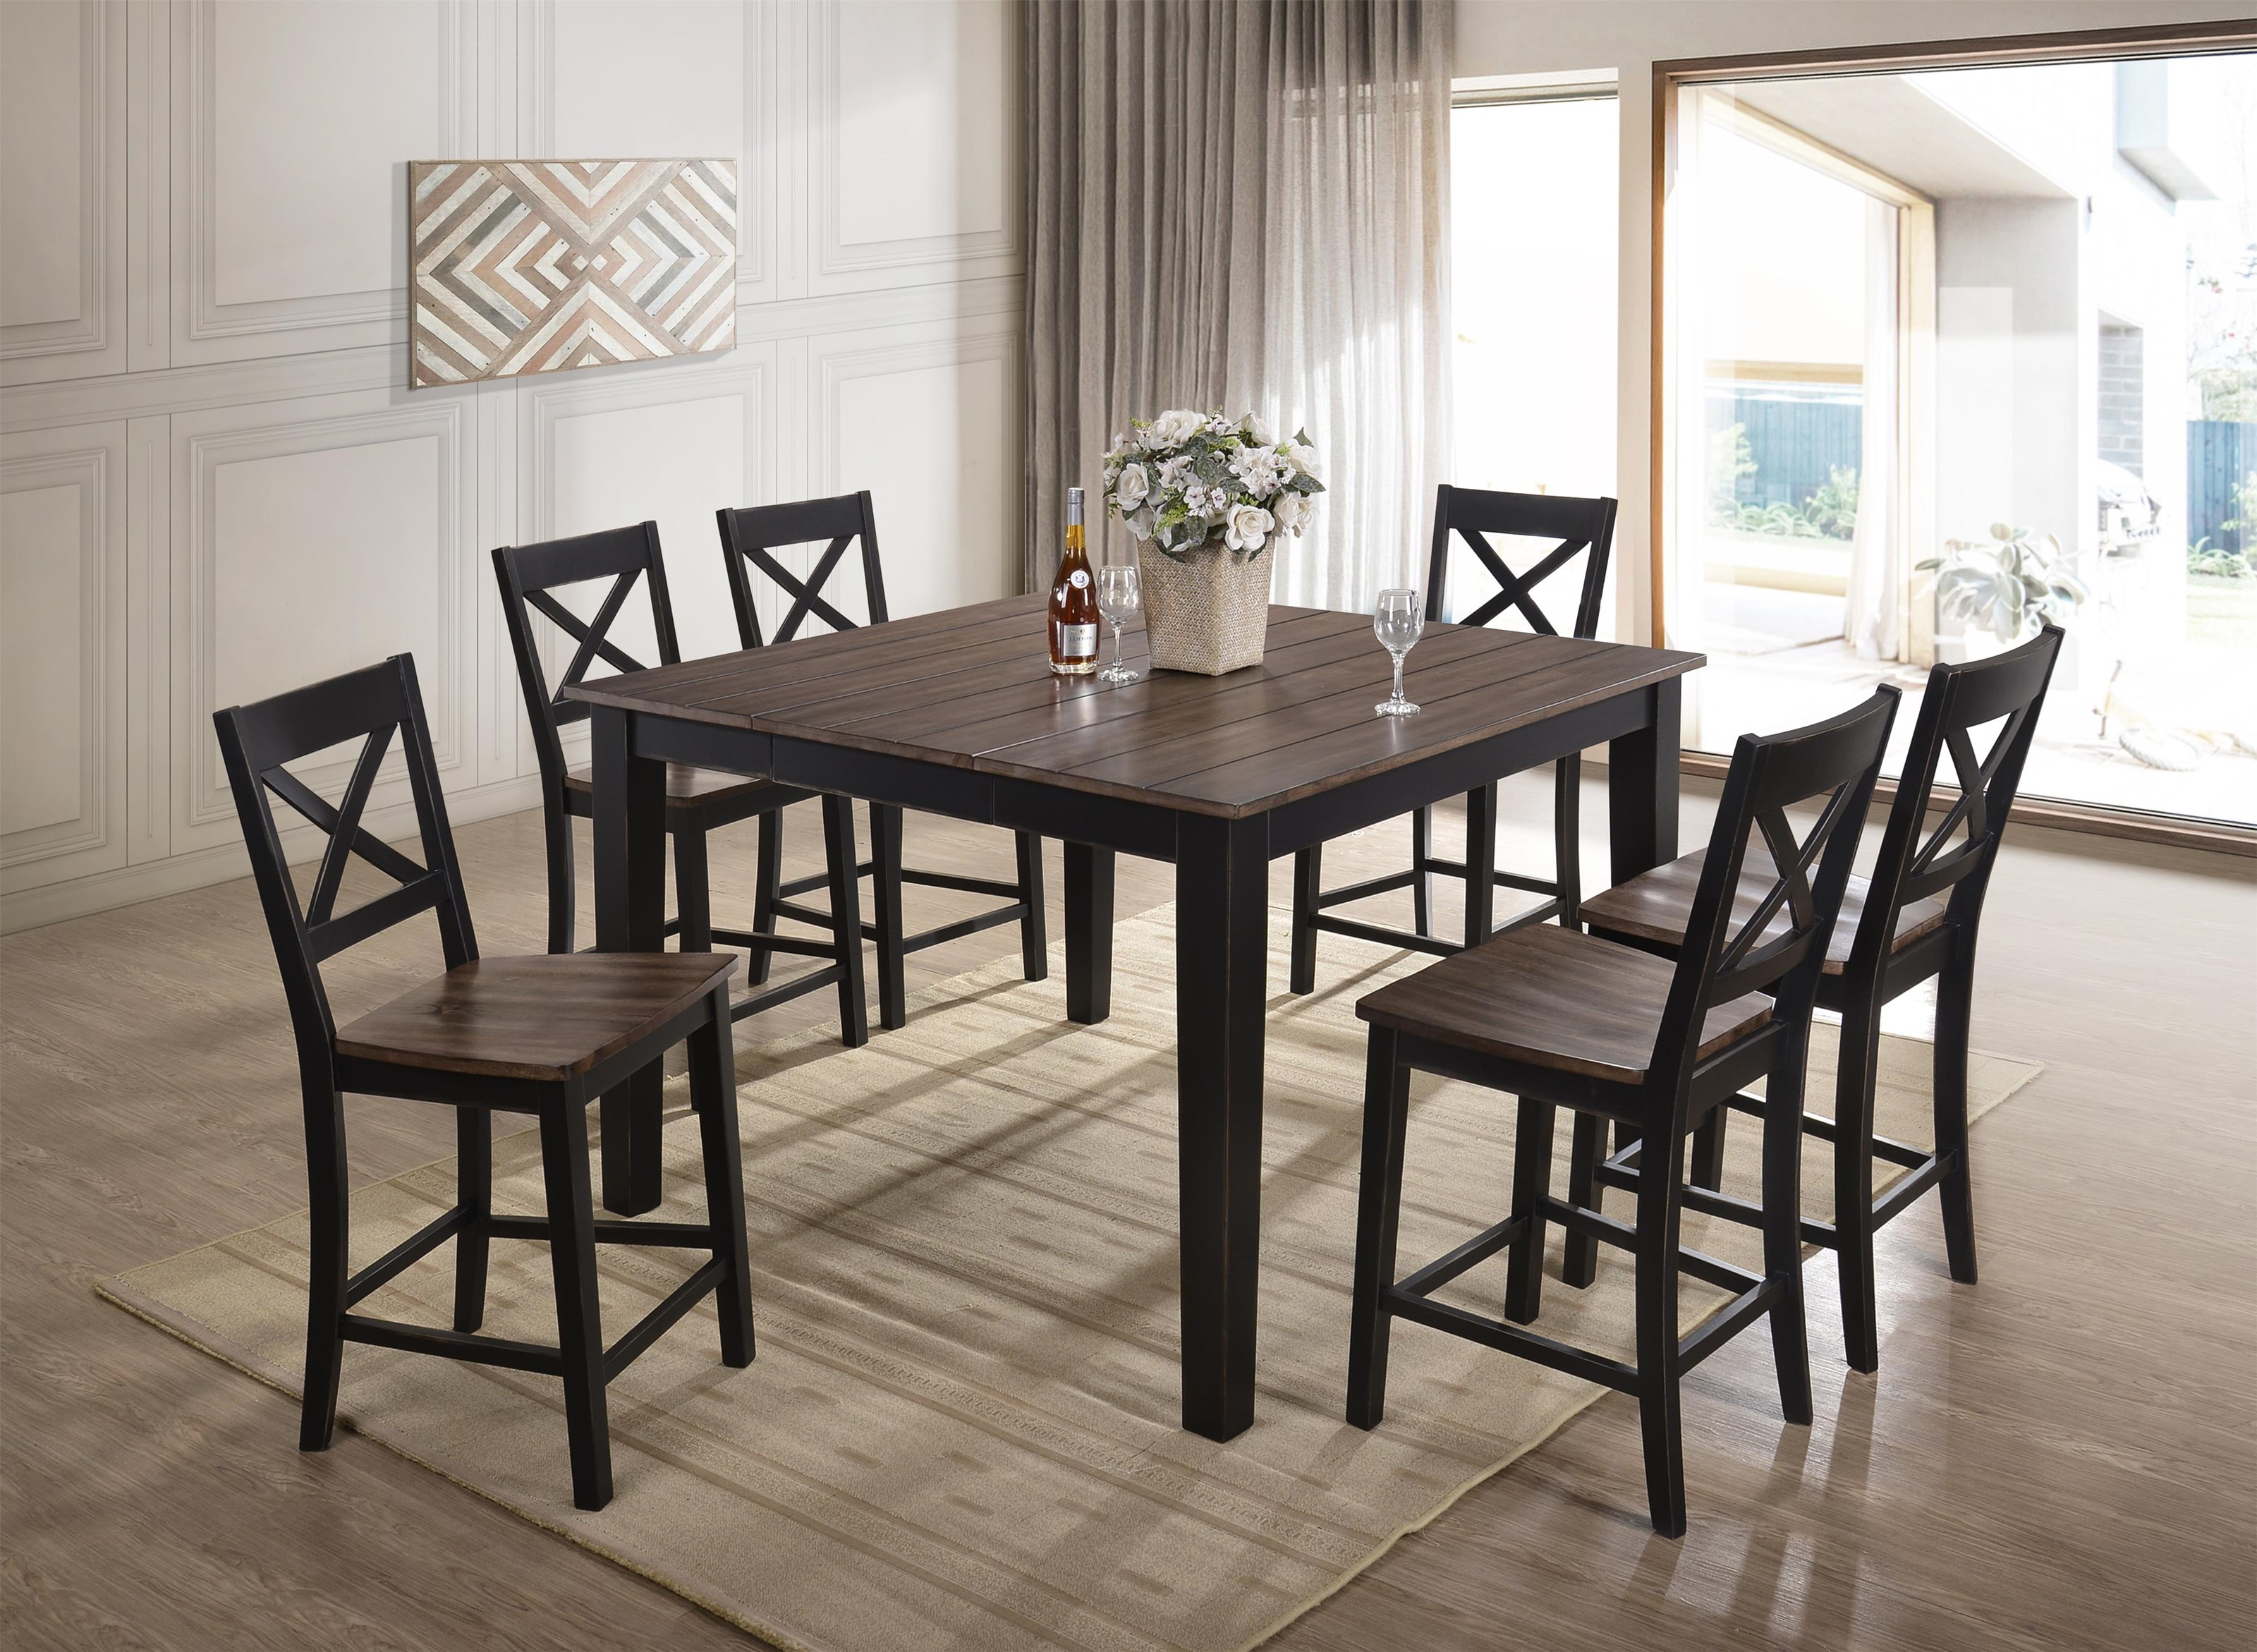 5058 Table and Stools by United Furniture Industries at Value City Furniture